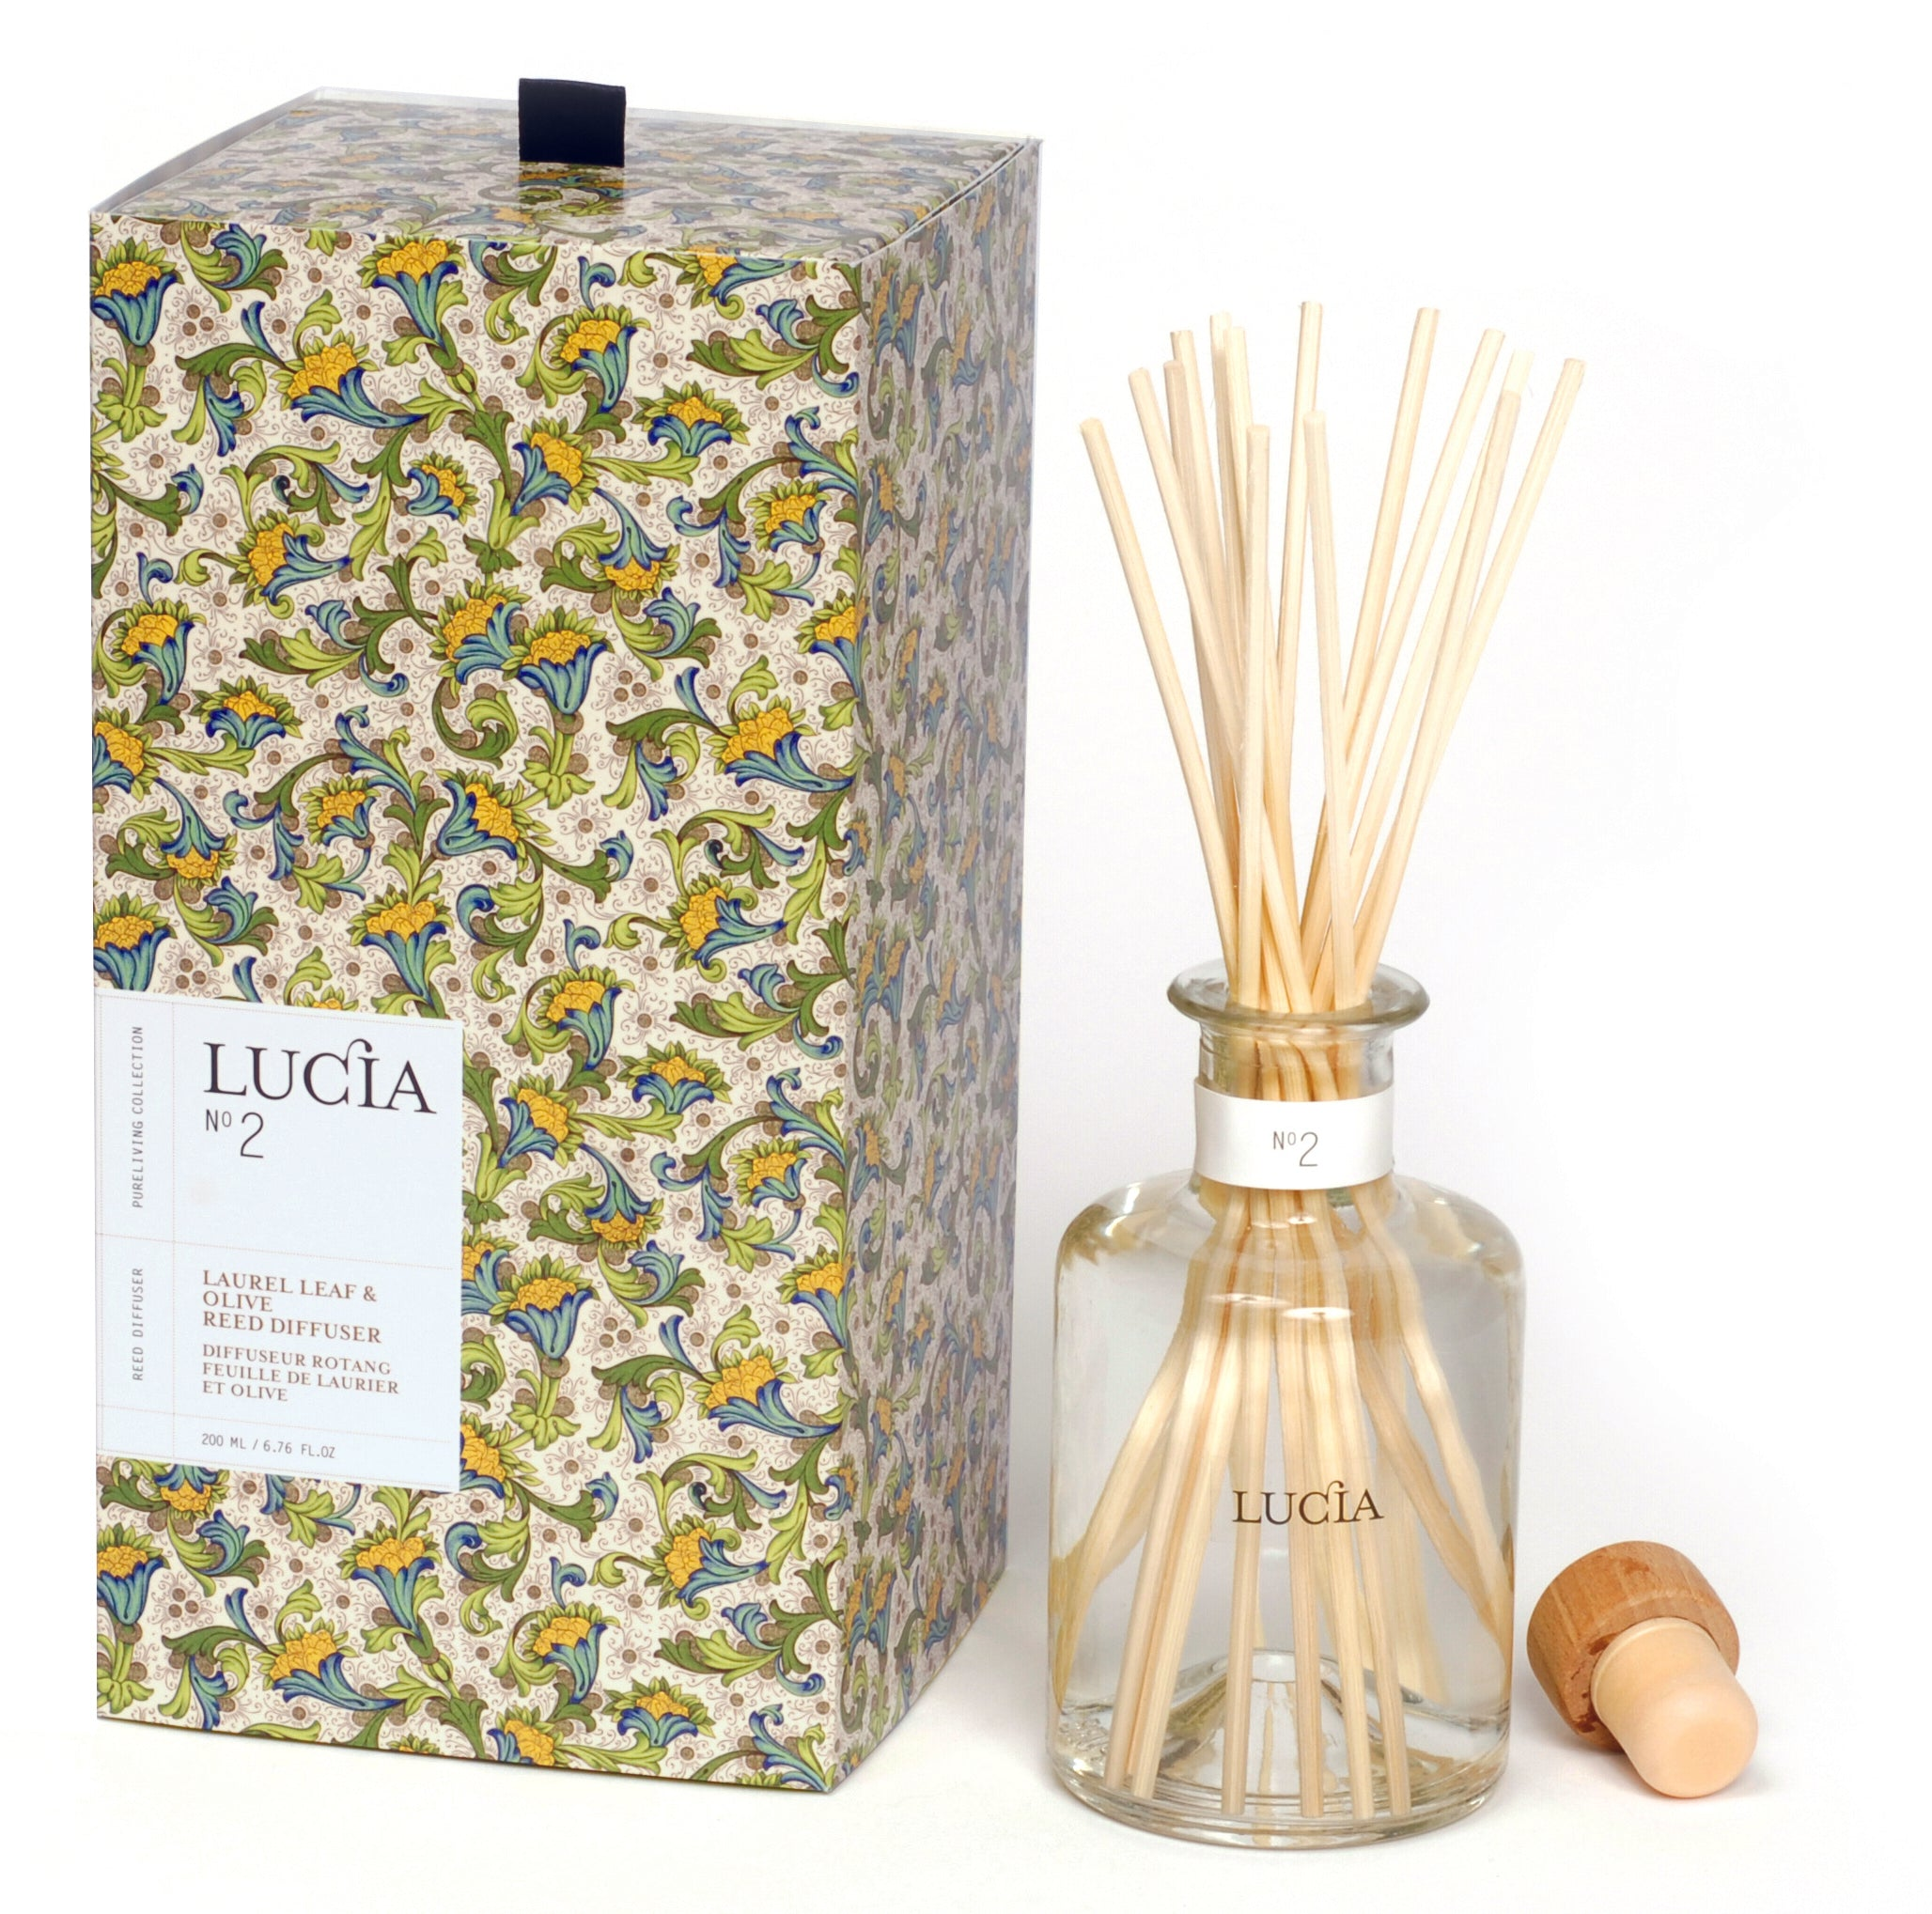 Laurel Leaf & Olive, Diffuser, LUCIA-VONMEL Luxe Gifts